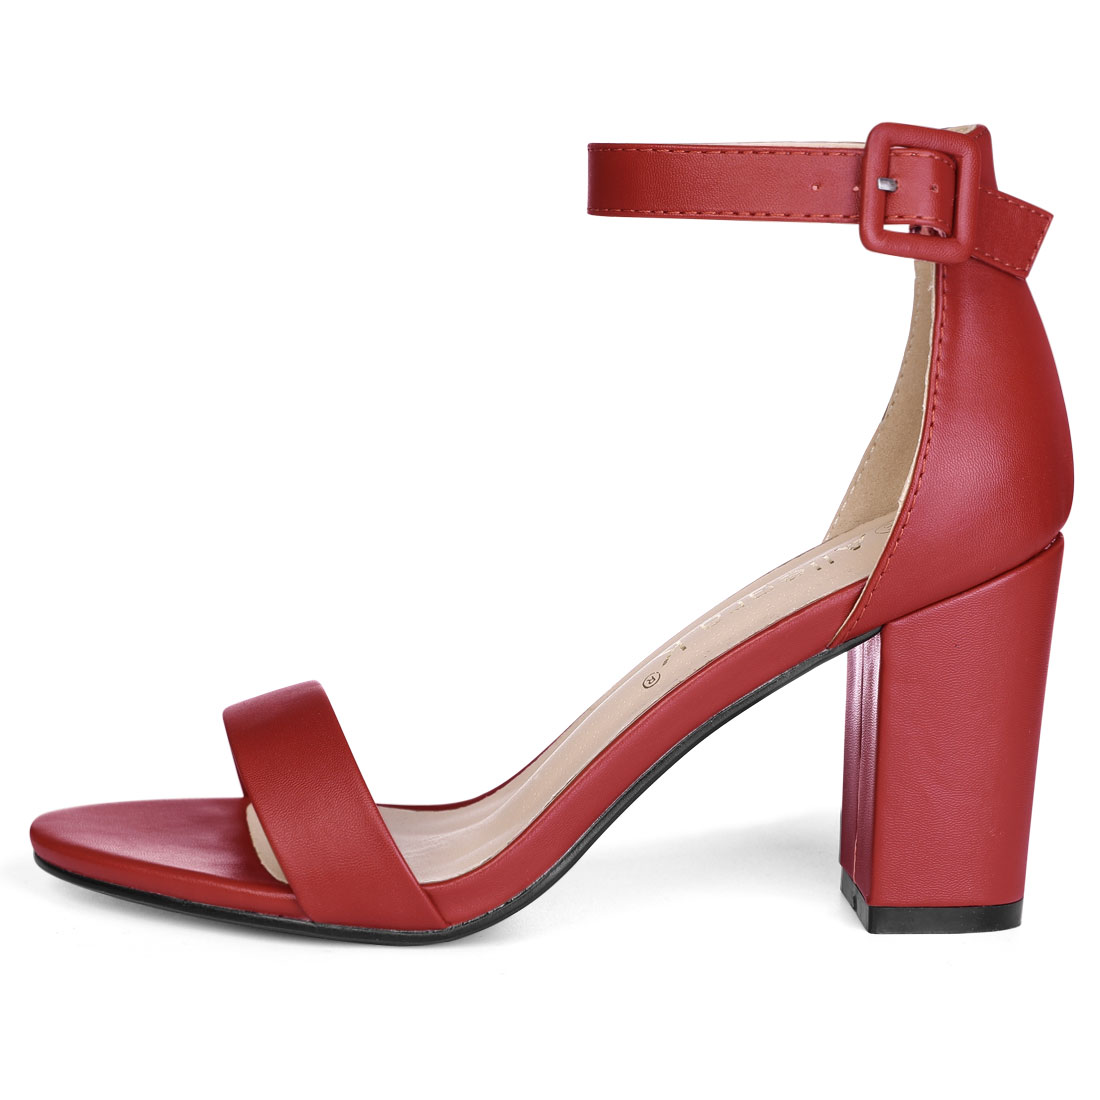 YFL284-66 Women Open Toe Chunky High Heel Ankle Strap Sandals Red/US 9.5 - image 1 de 7